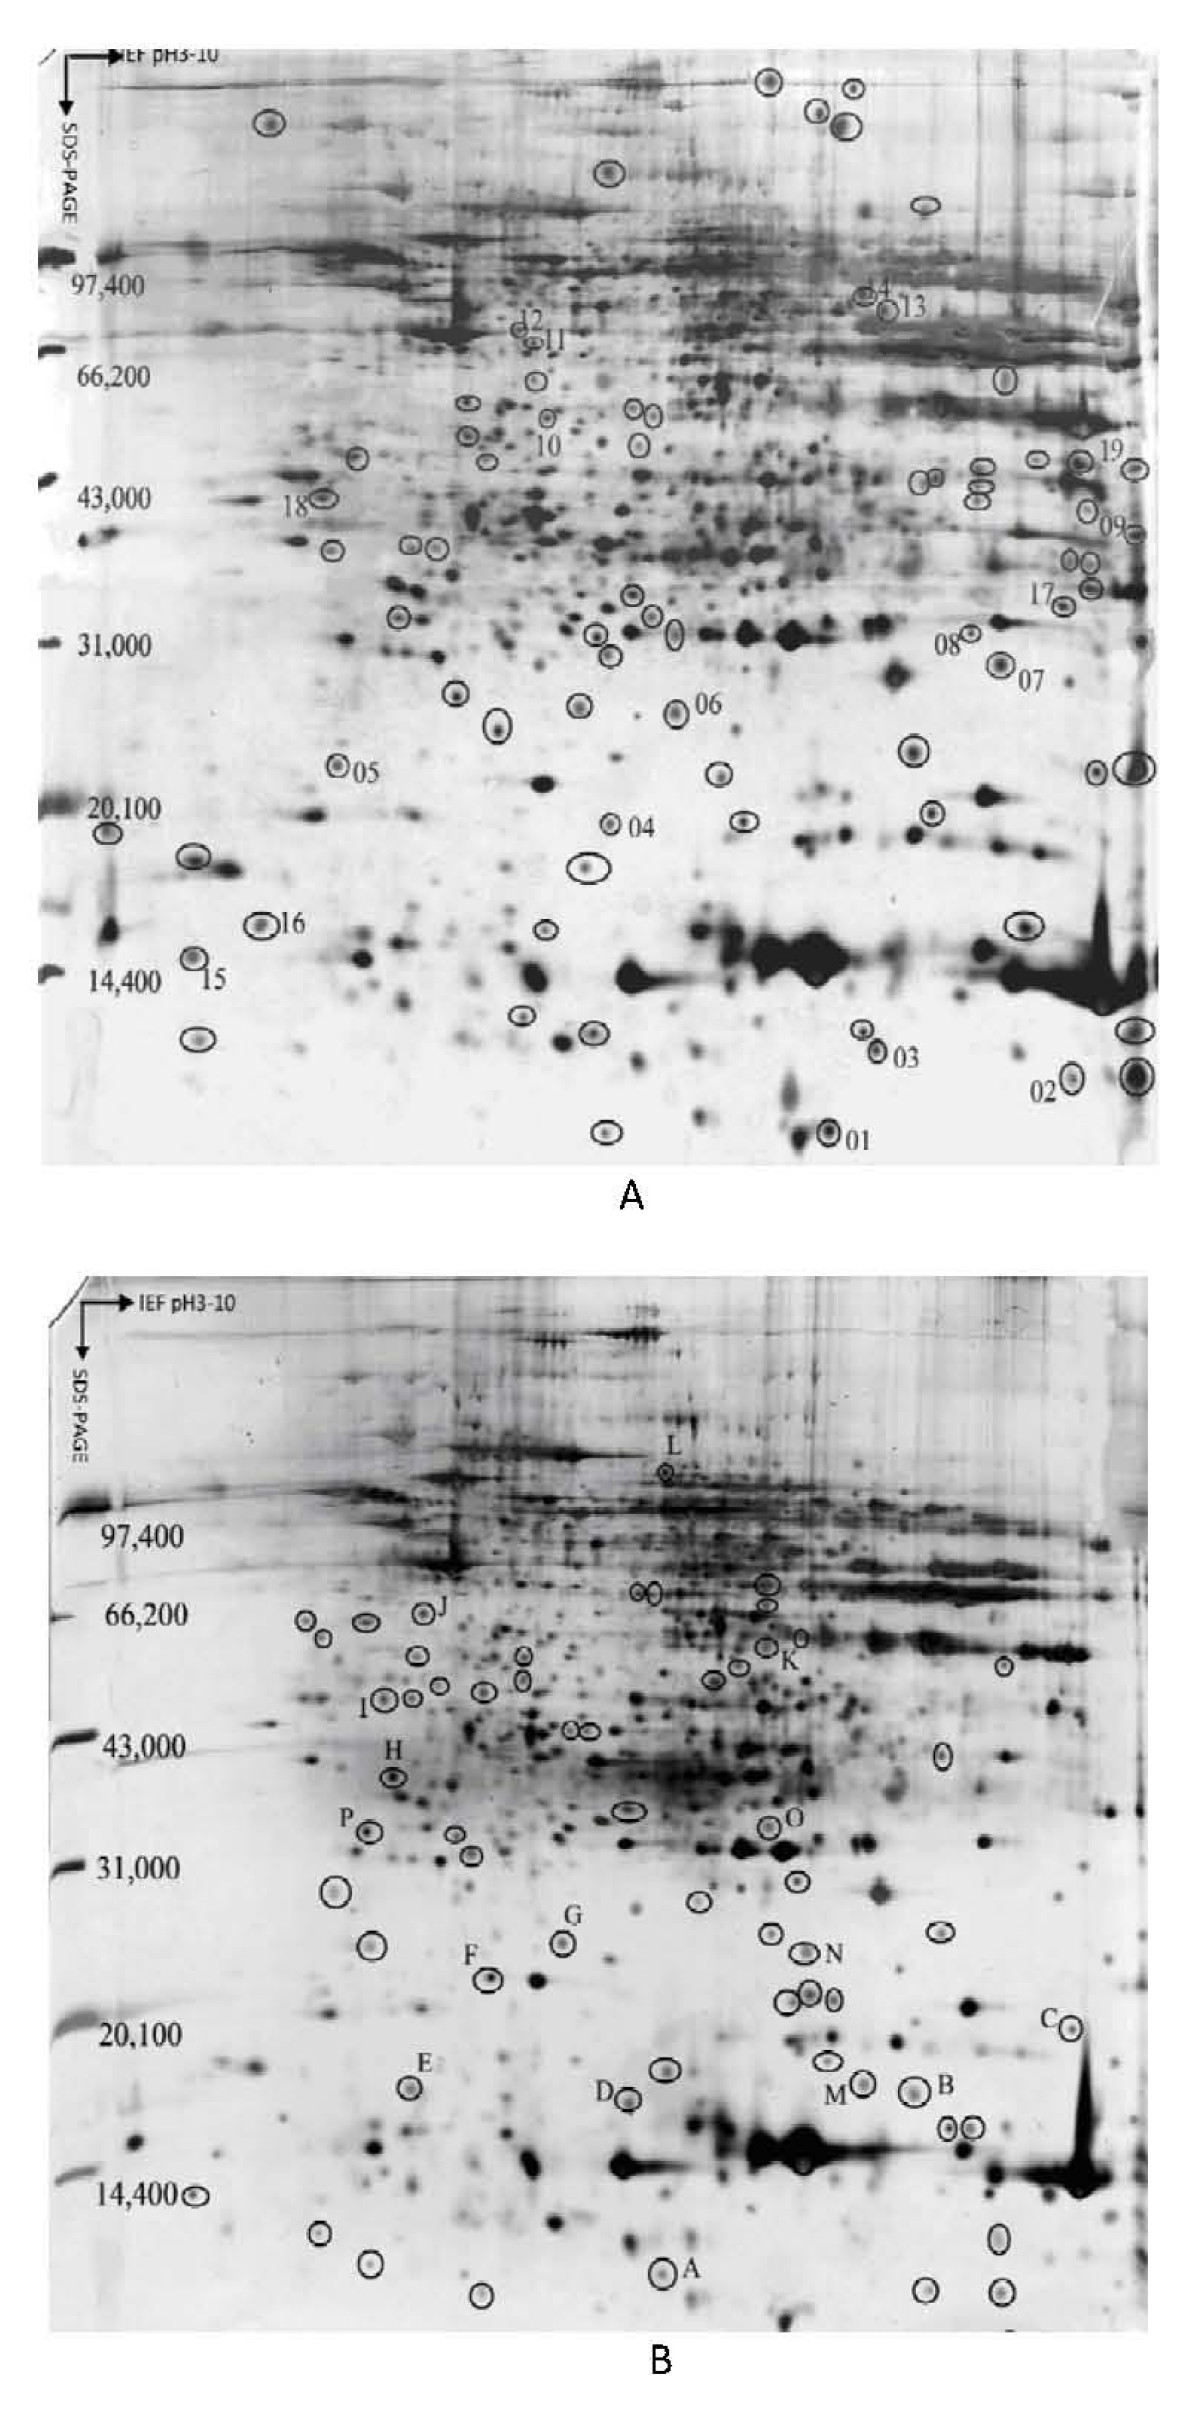 https://static-content.springer.com/image/art%3A10.1186%2F1756-9966-28-122/MediaObjects/13046_2009_Article_209_Fig1_HTML.jpg